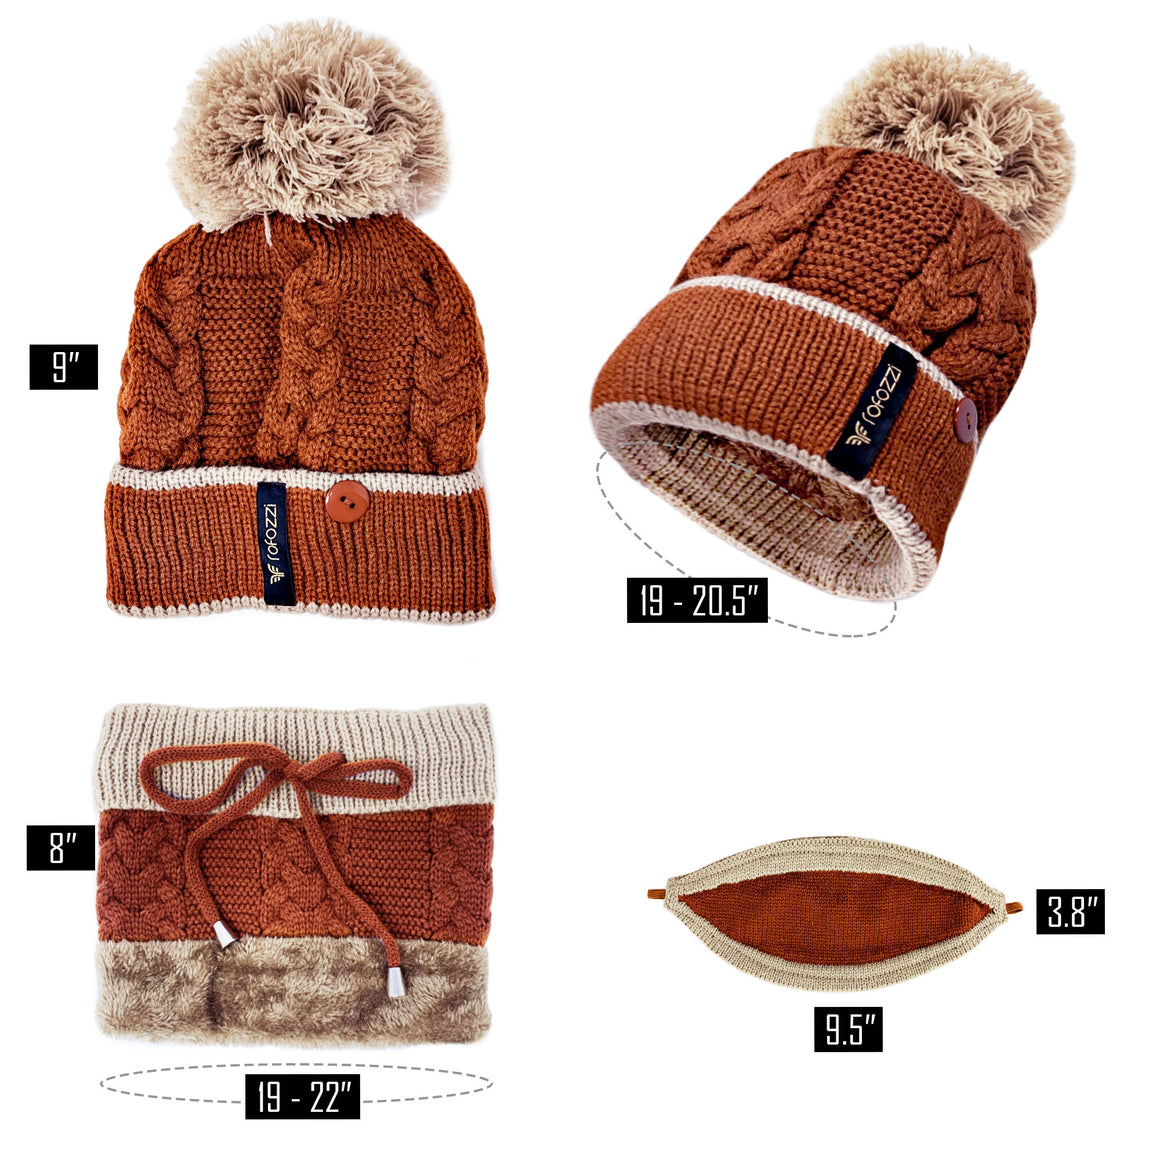 Pompom Beanie Hat Neck Warmer - 3-in-1 - Brown